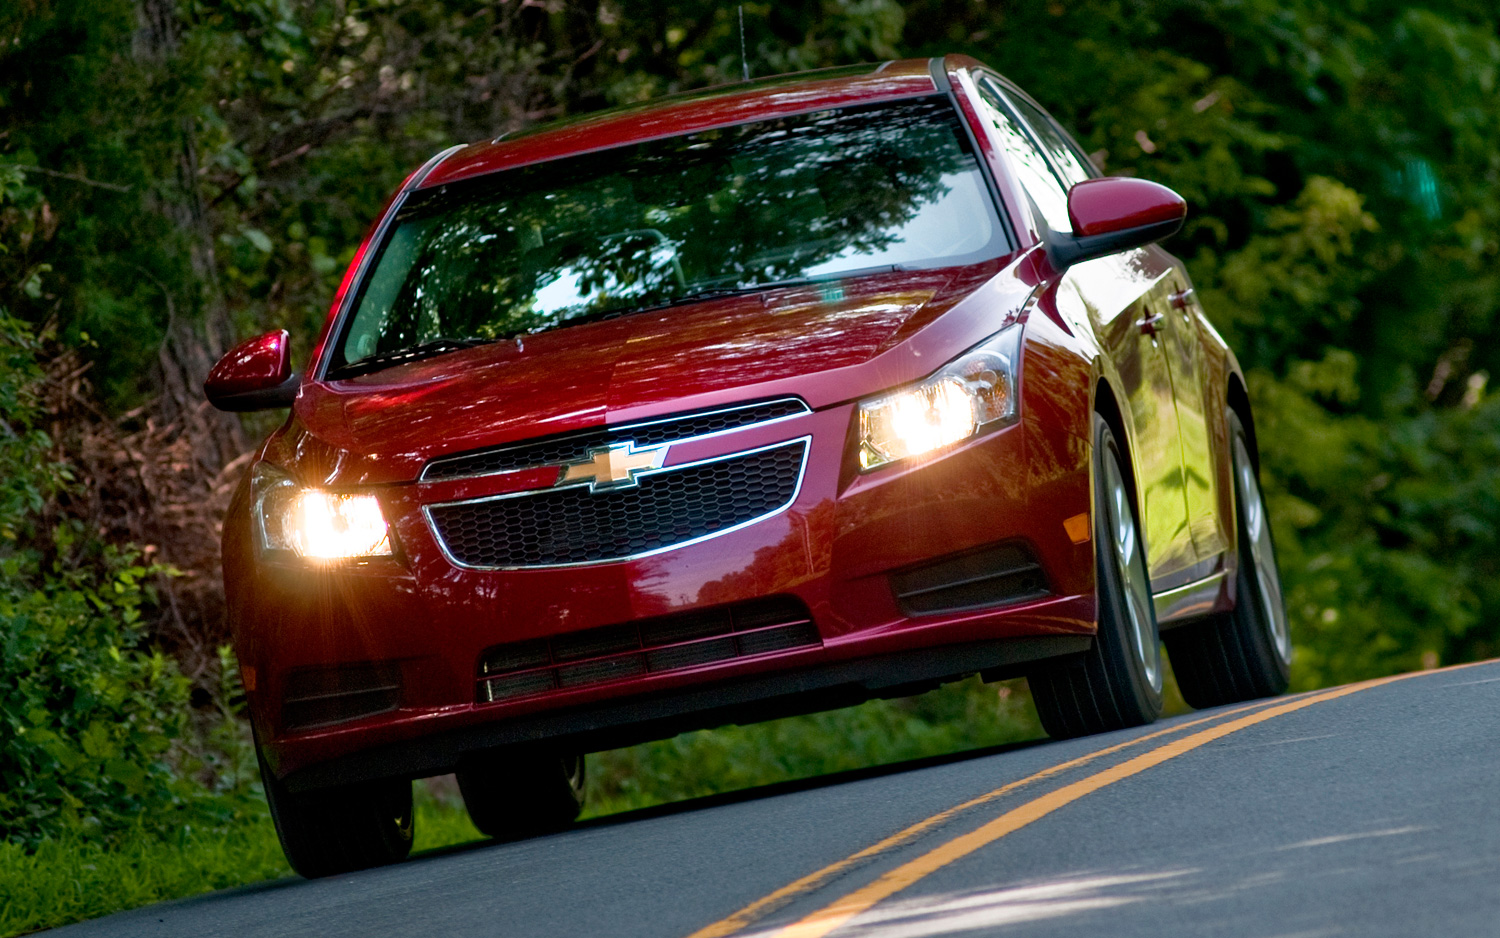 2011 Chevy Cruze Engine Parts All About Chevrolet 2012 Diagram Symbols Sonic Source Transmission Car Wiring Diagrams